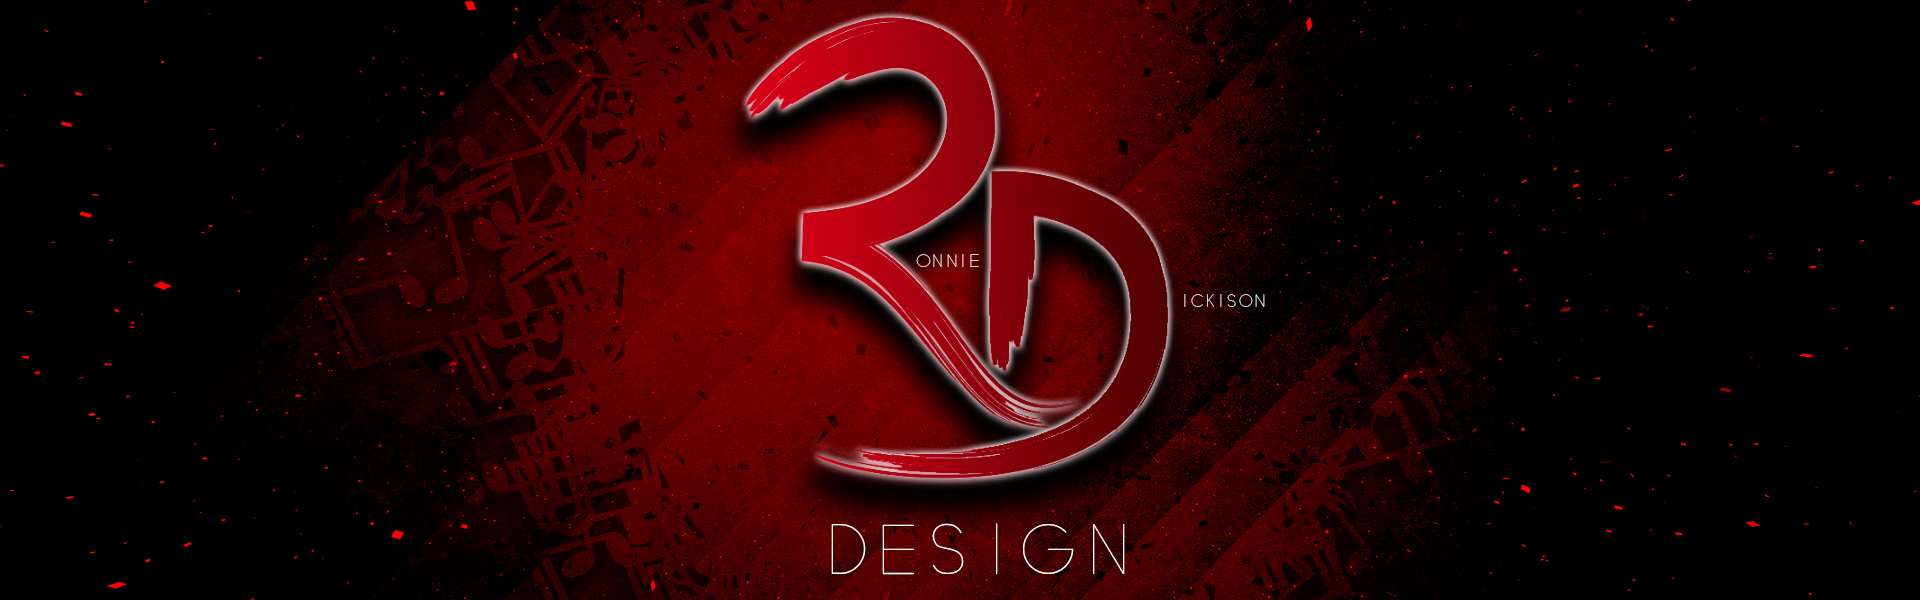 Ronnie Dickison Design